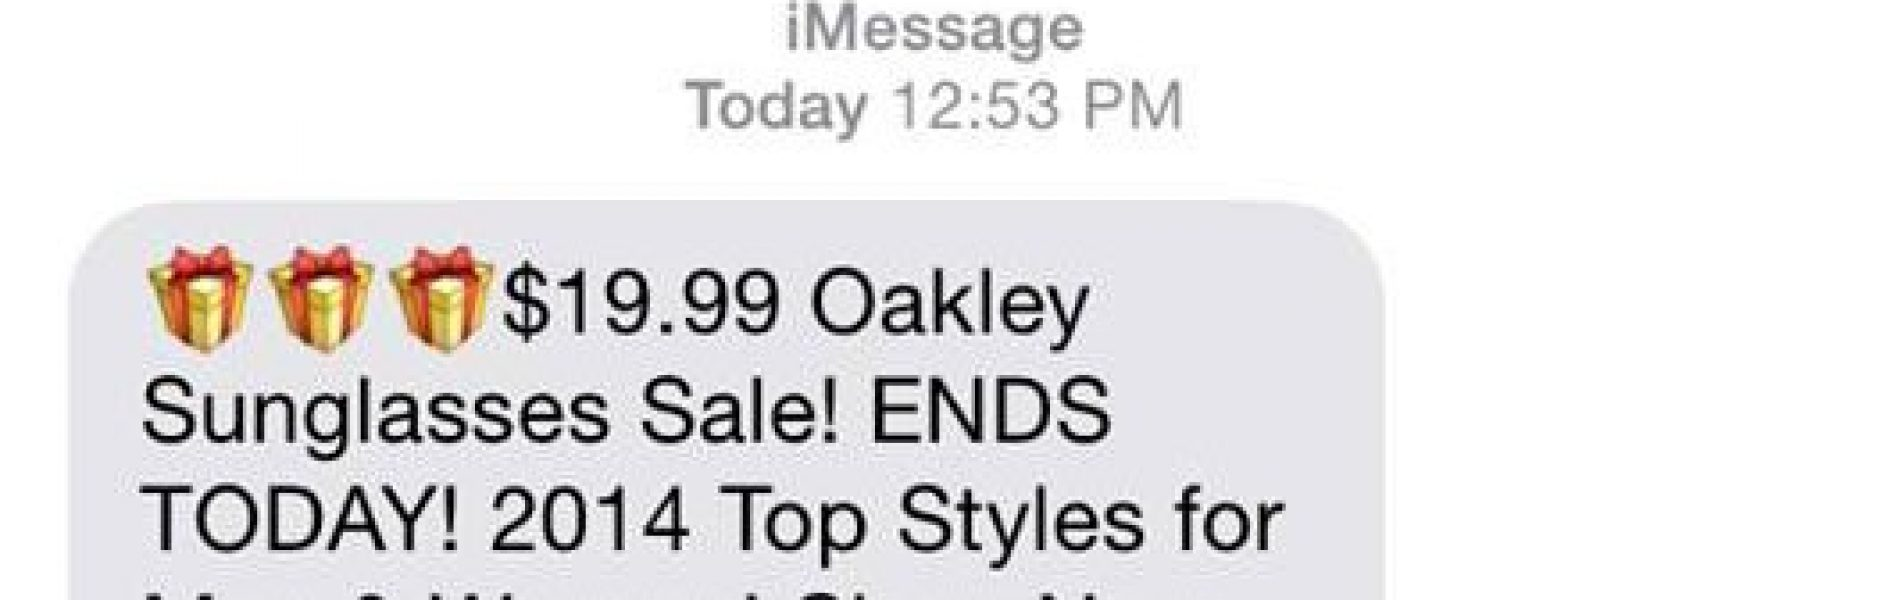 What does iMessage Spam look like?